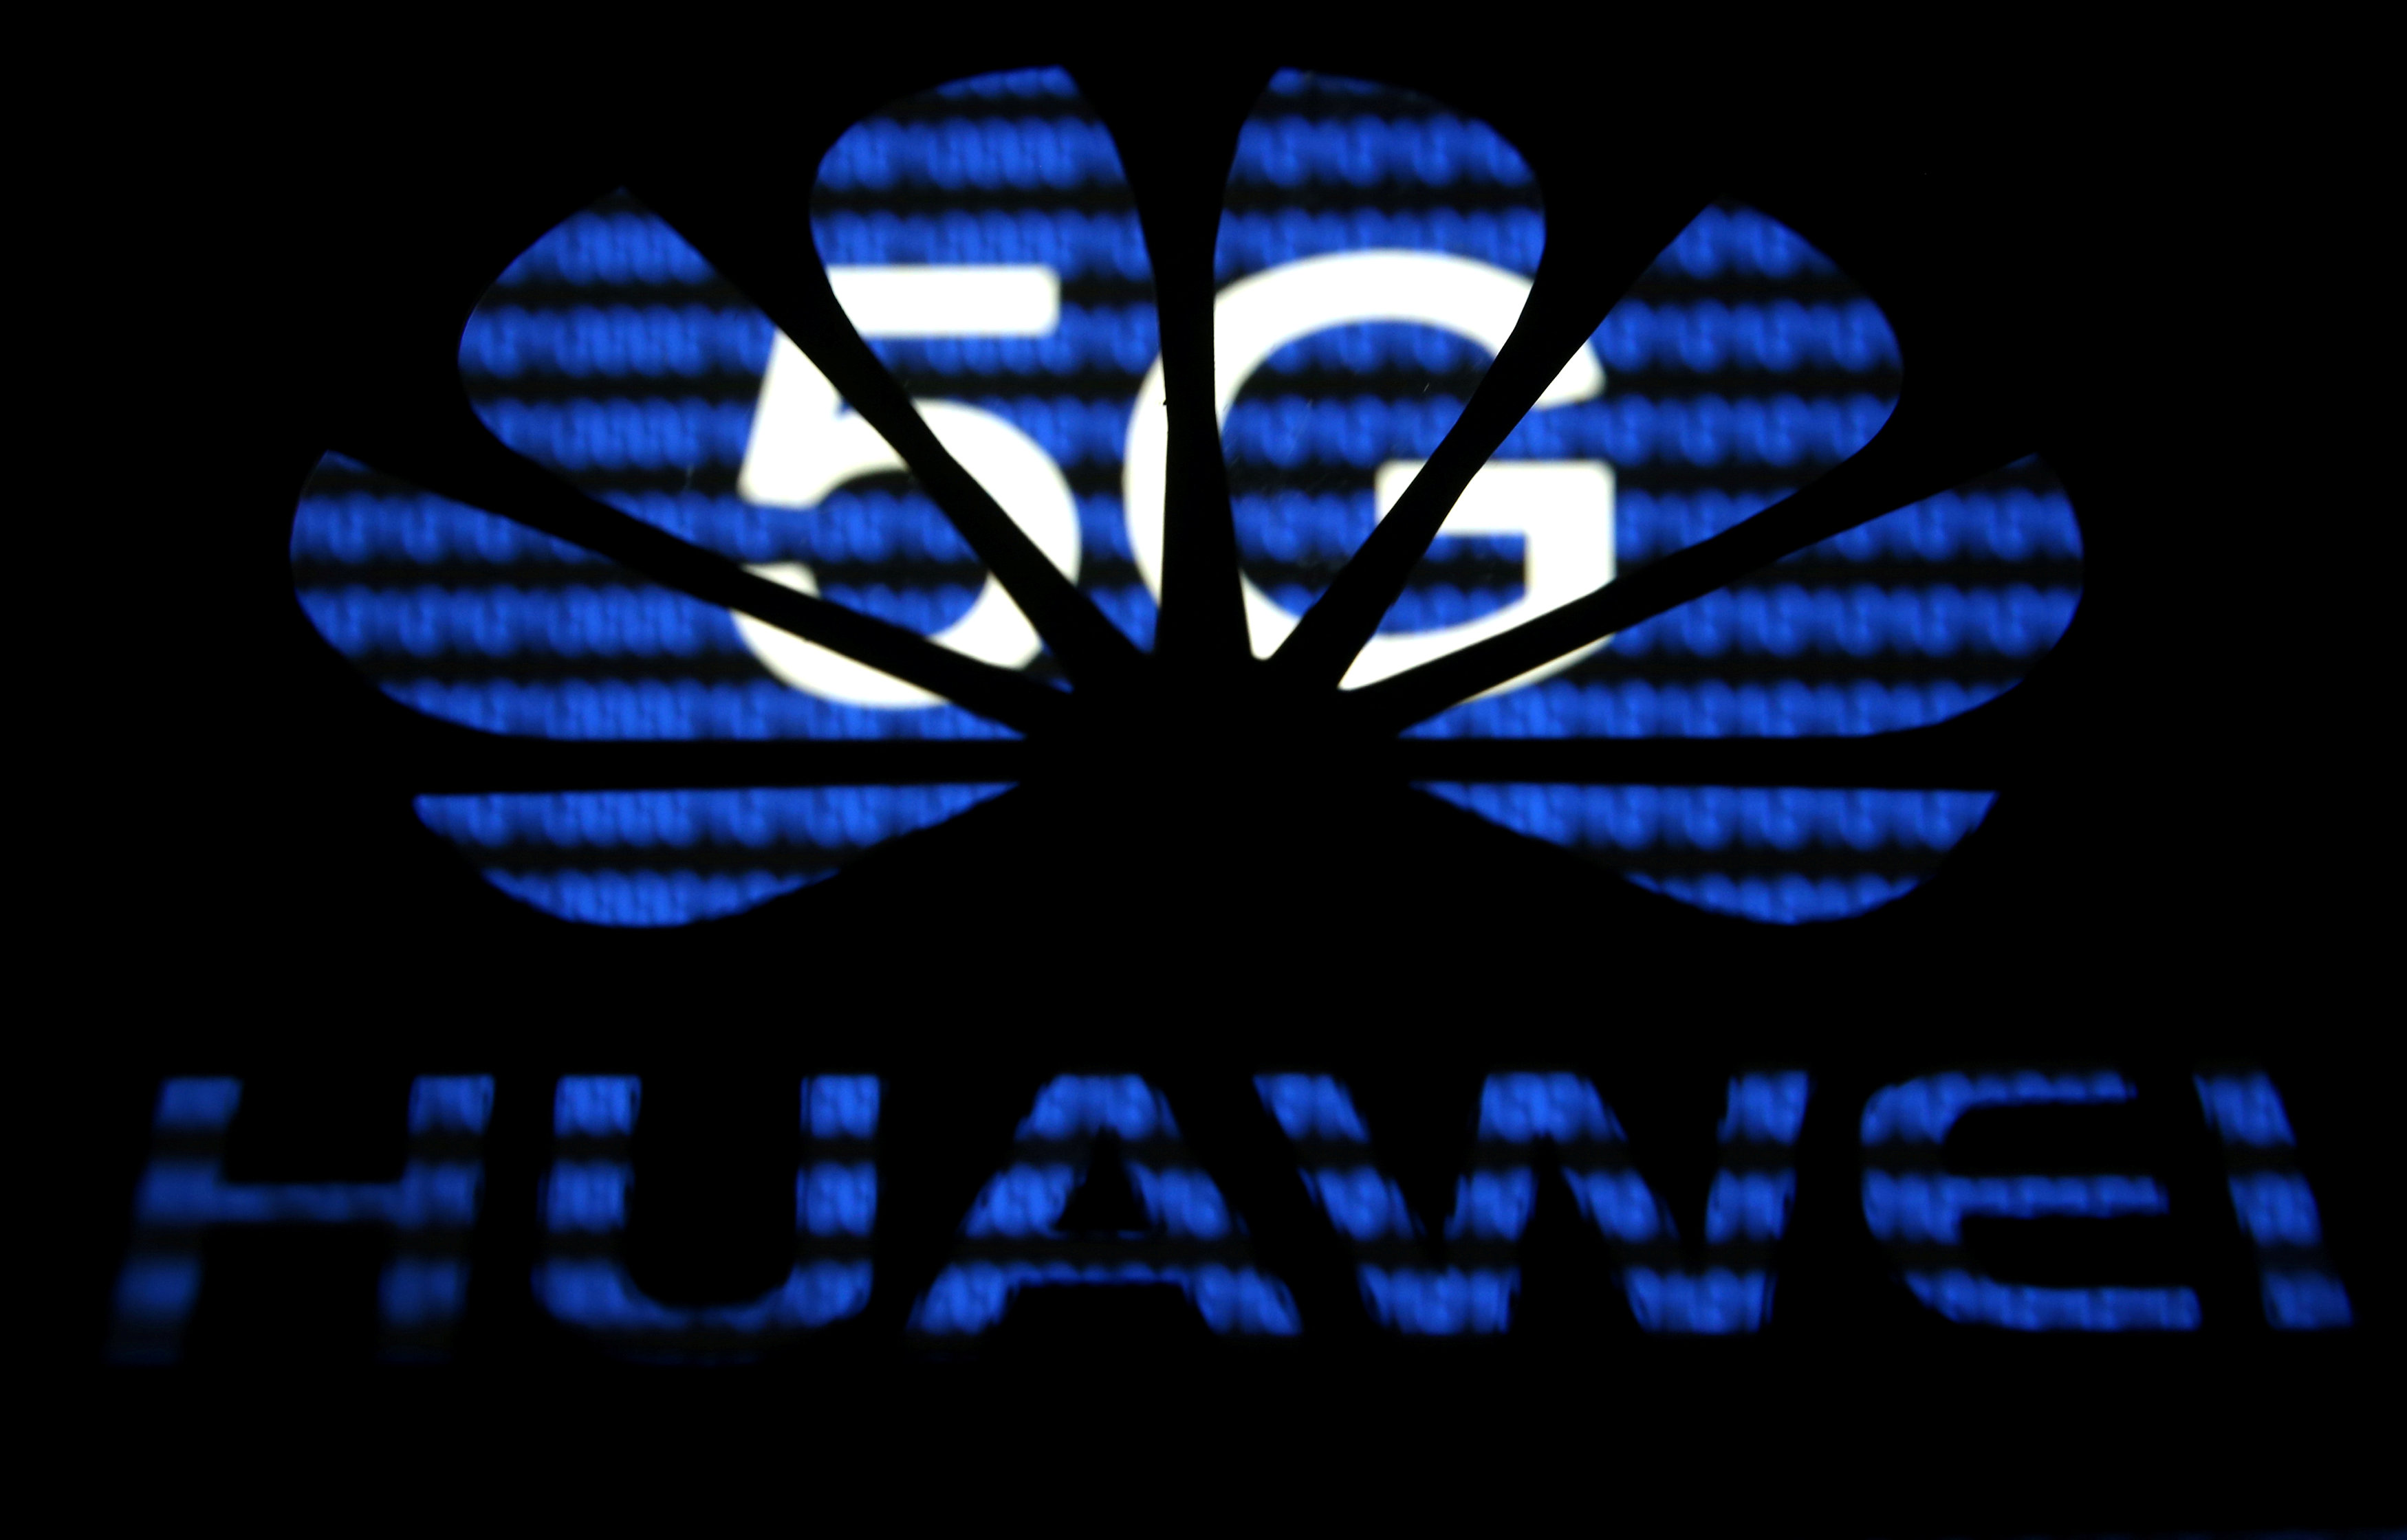 According to Huawei, both companies will work together to deliver 4G and 5G capacity solutions for an unmatched personalised experience, innovation in 5G network design, deployment and operating efficiencies. — Reuters pic